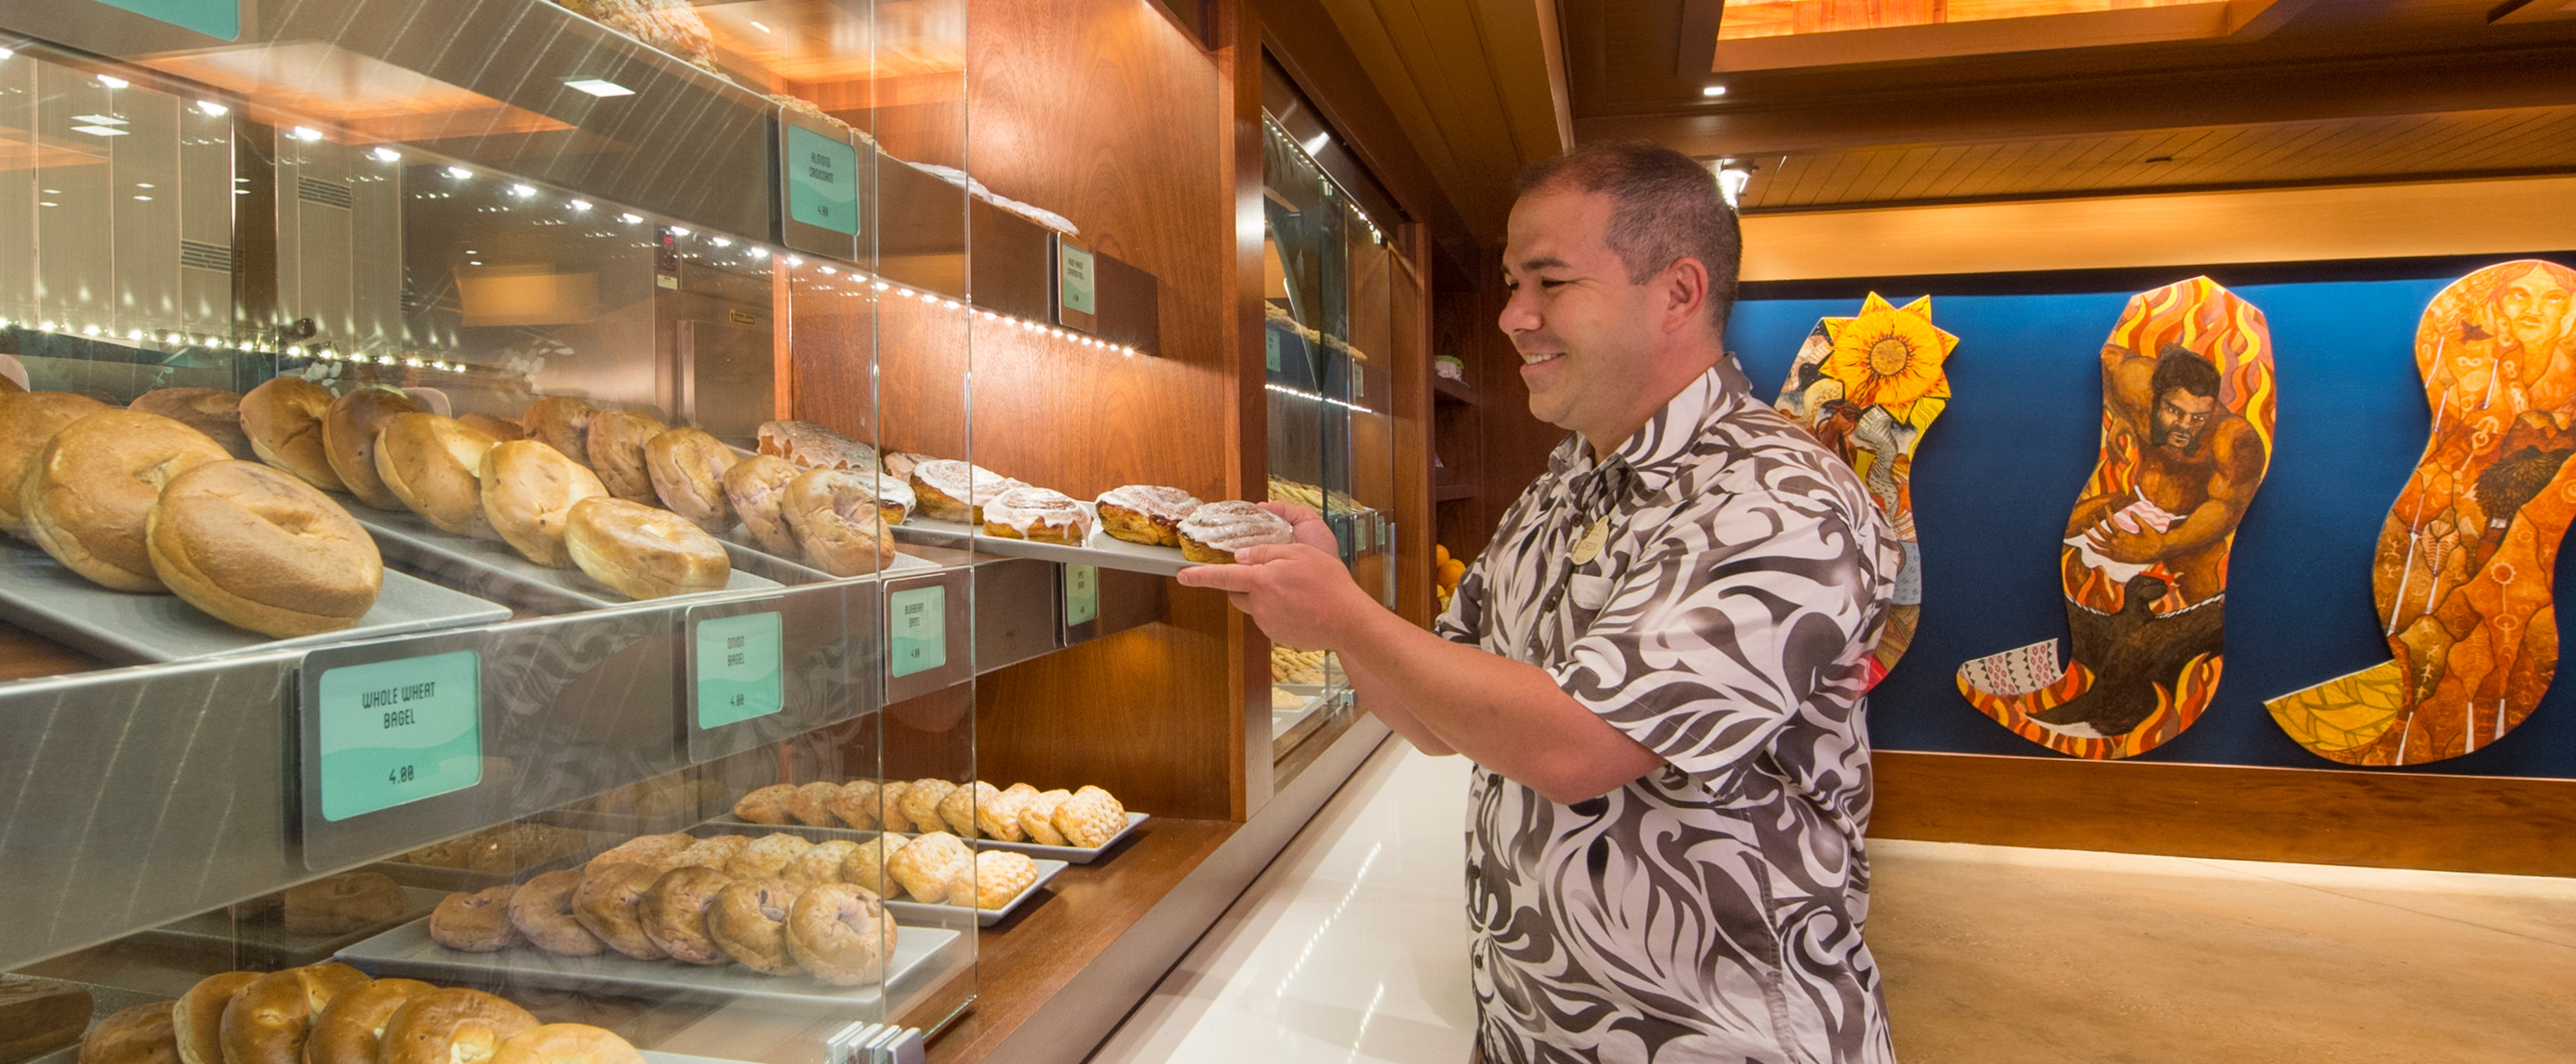 A Cast Member slides a tray of cinnamon rolls into a pastry case filled with bagels at Ulu Café